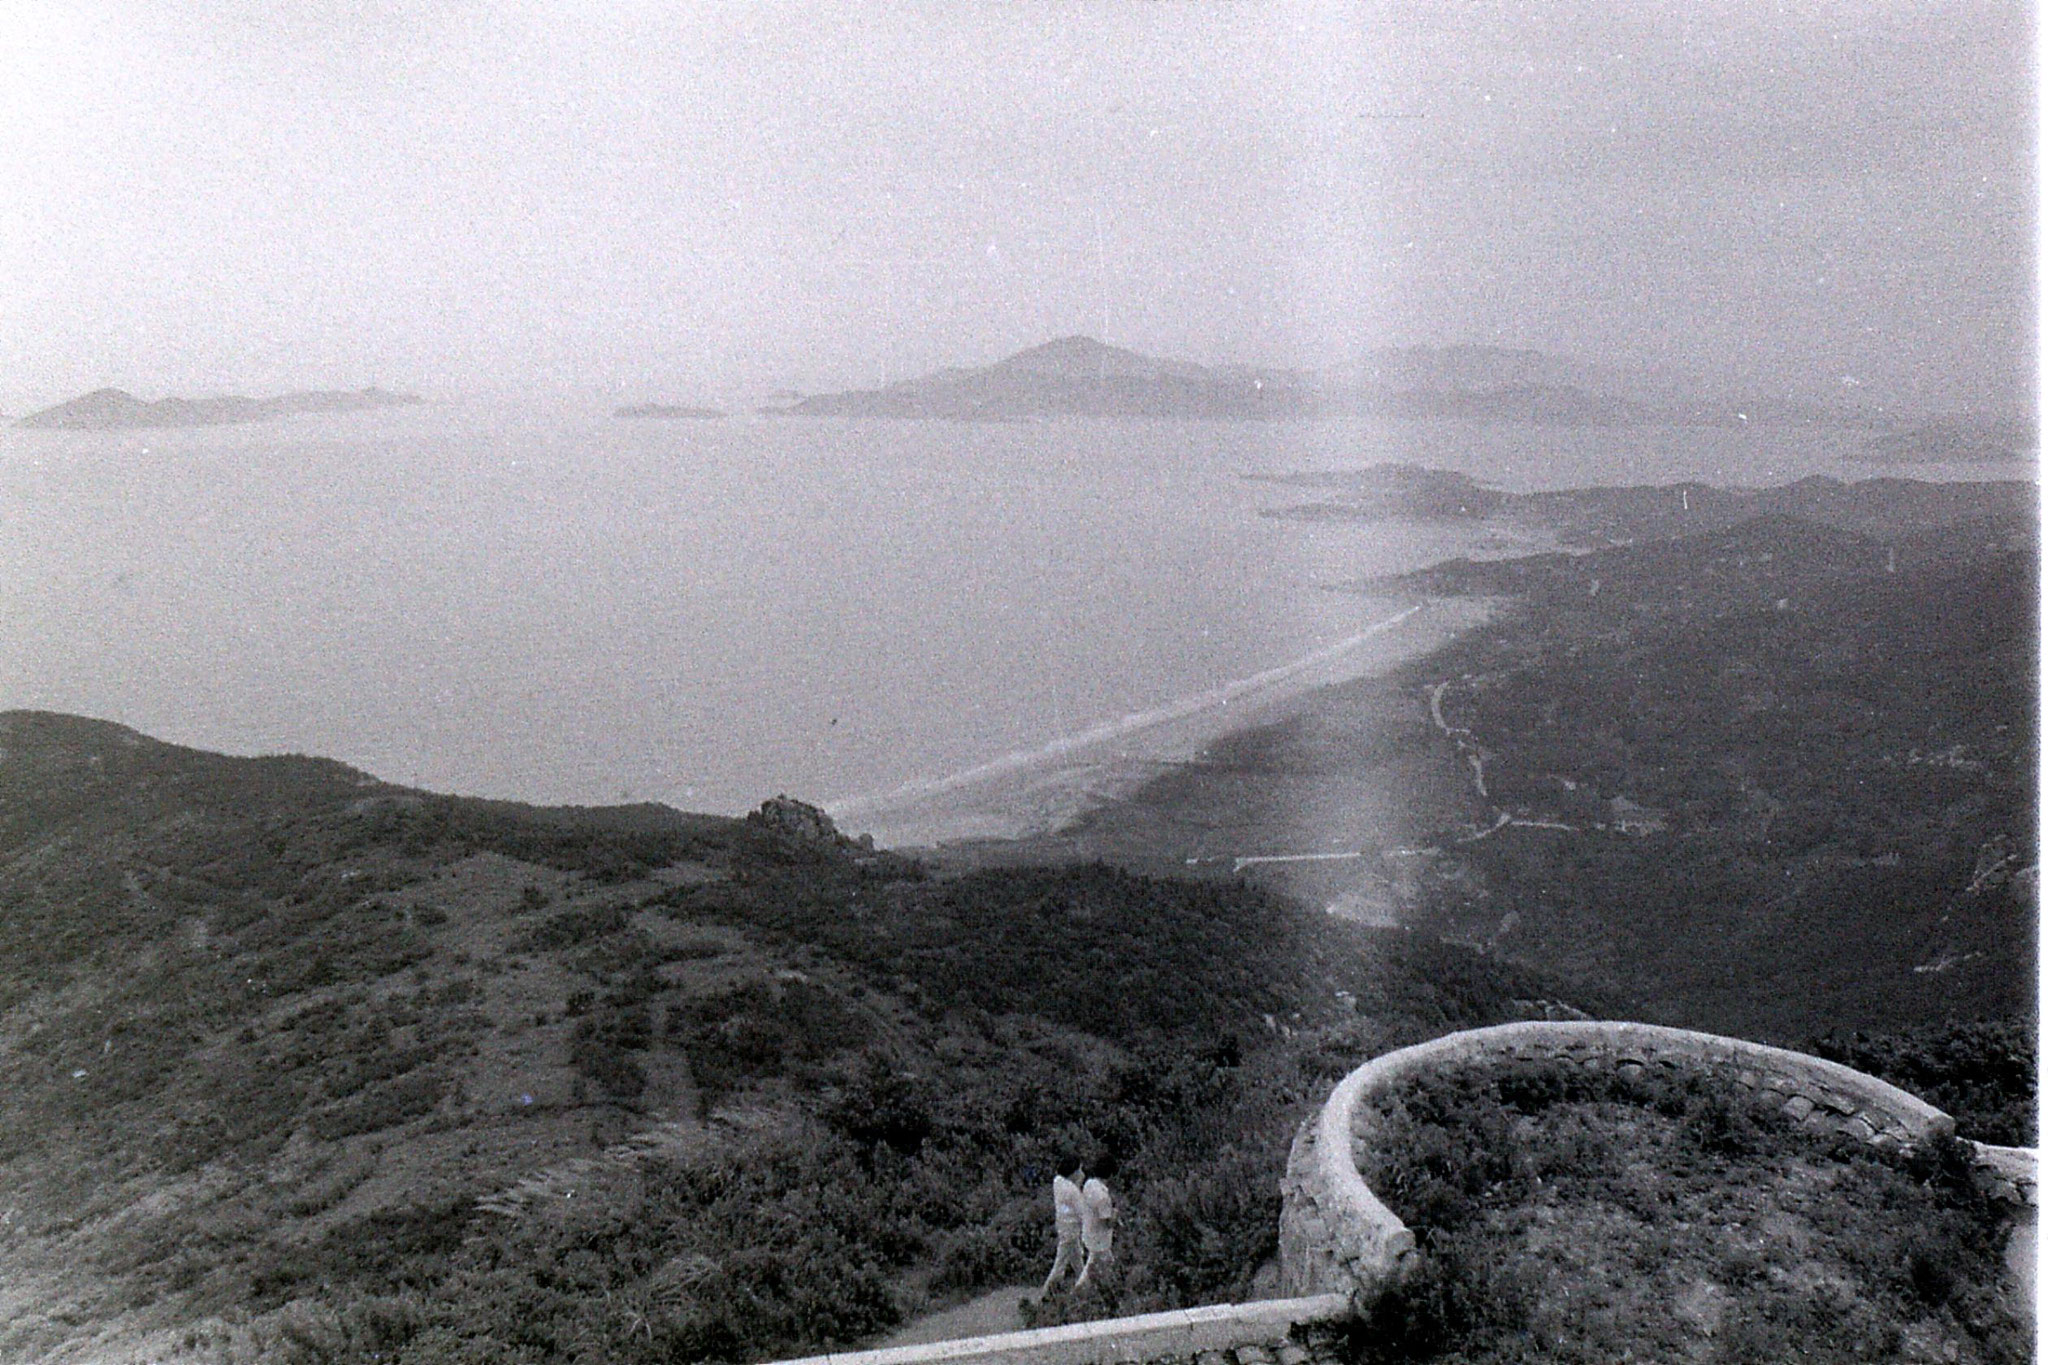 24/7/1989: 4: Putuo view S from Fading Shan